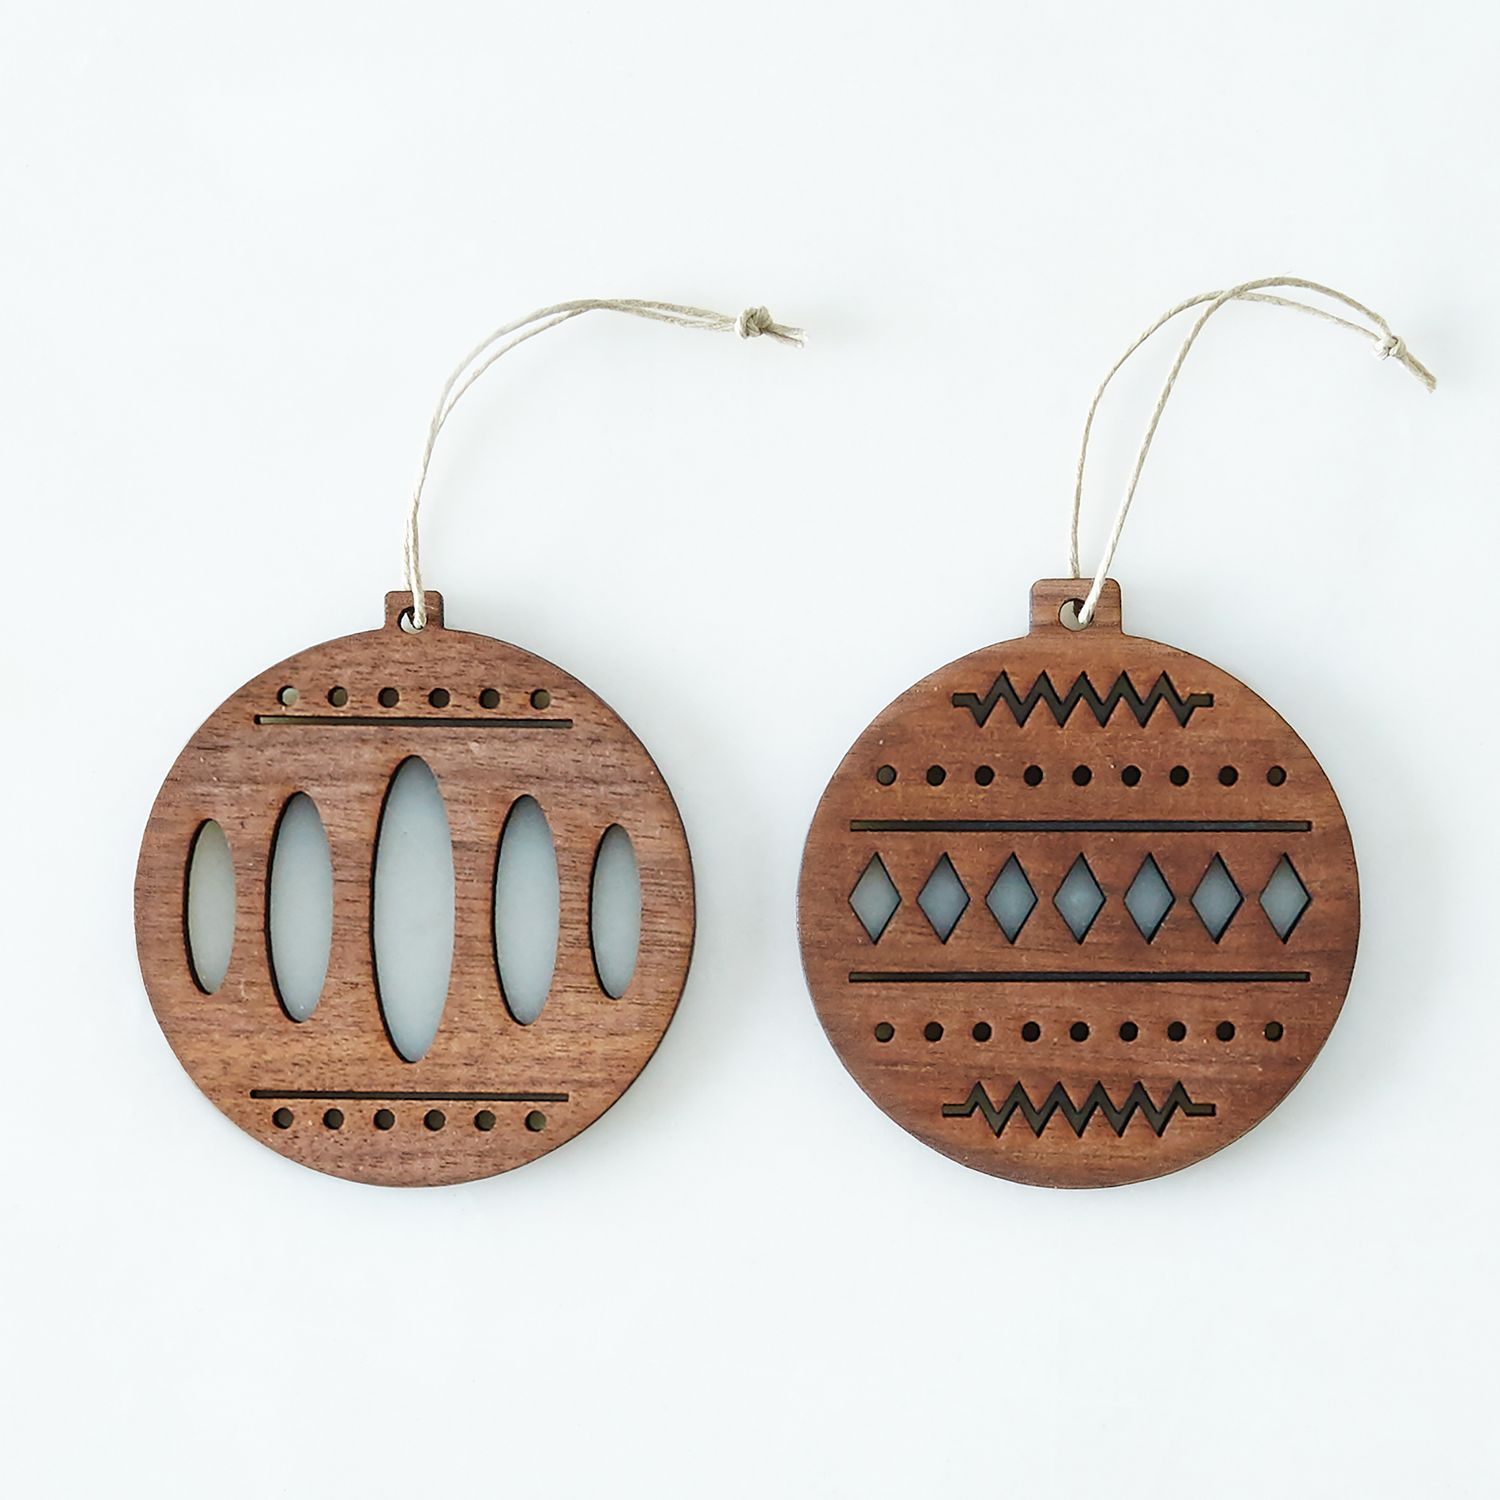 Laser Cut Walnut Ornaments On Food52